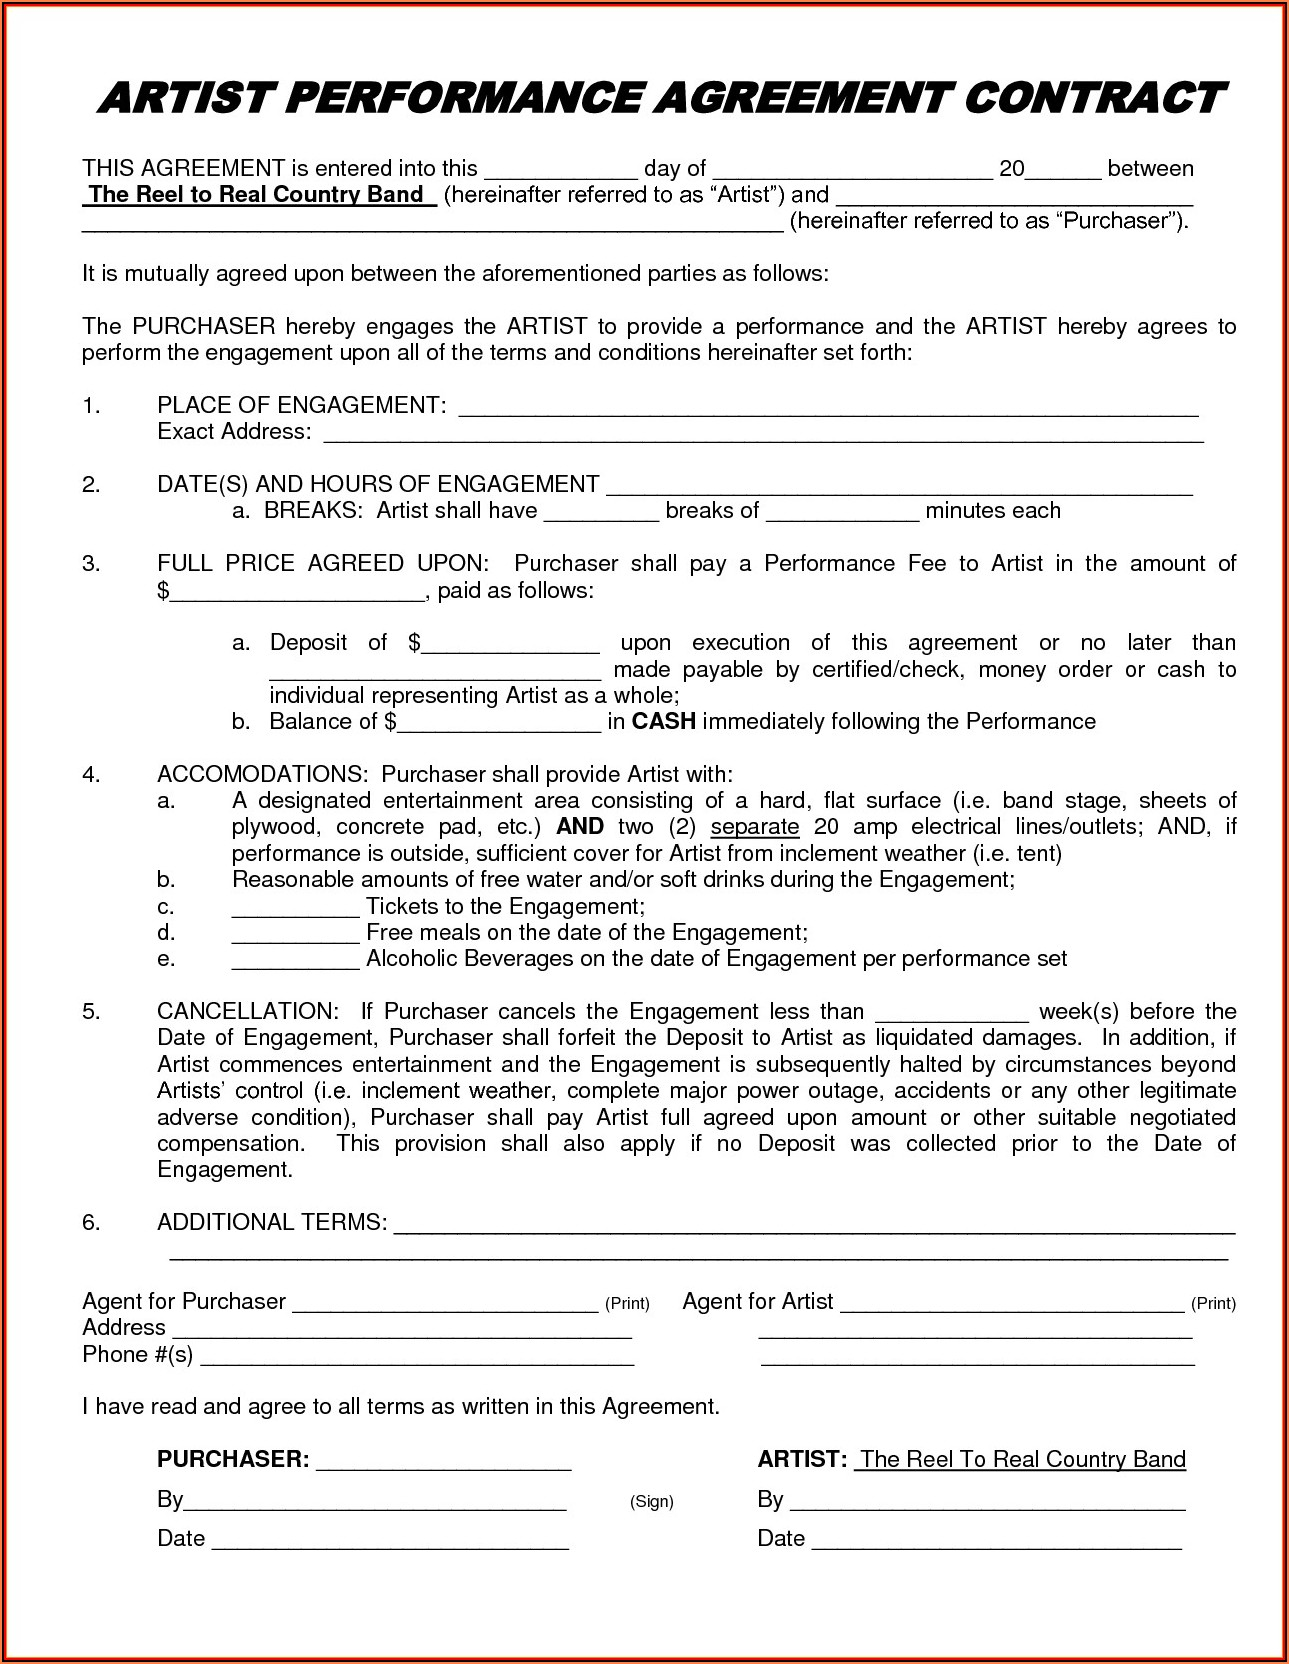 Artist Performance Agreement Contract Template